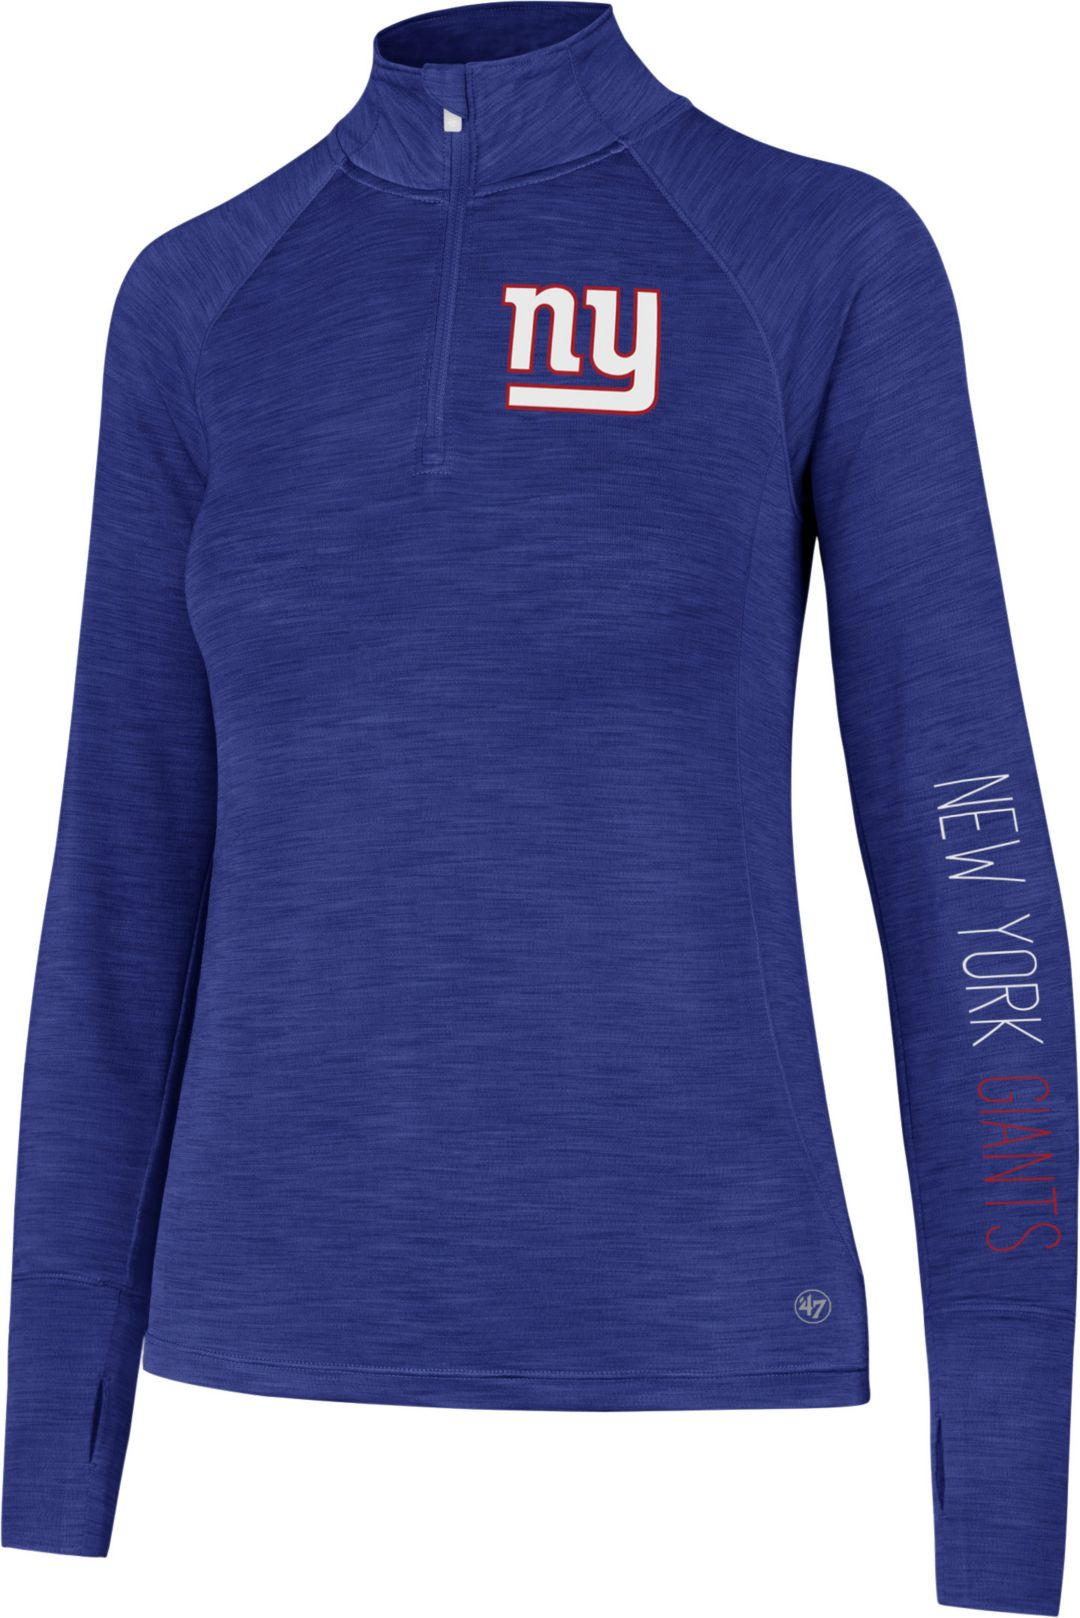 a8db6d41 '47 Women's New York Giants Shade Royal Quarter-Zip Pullover